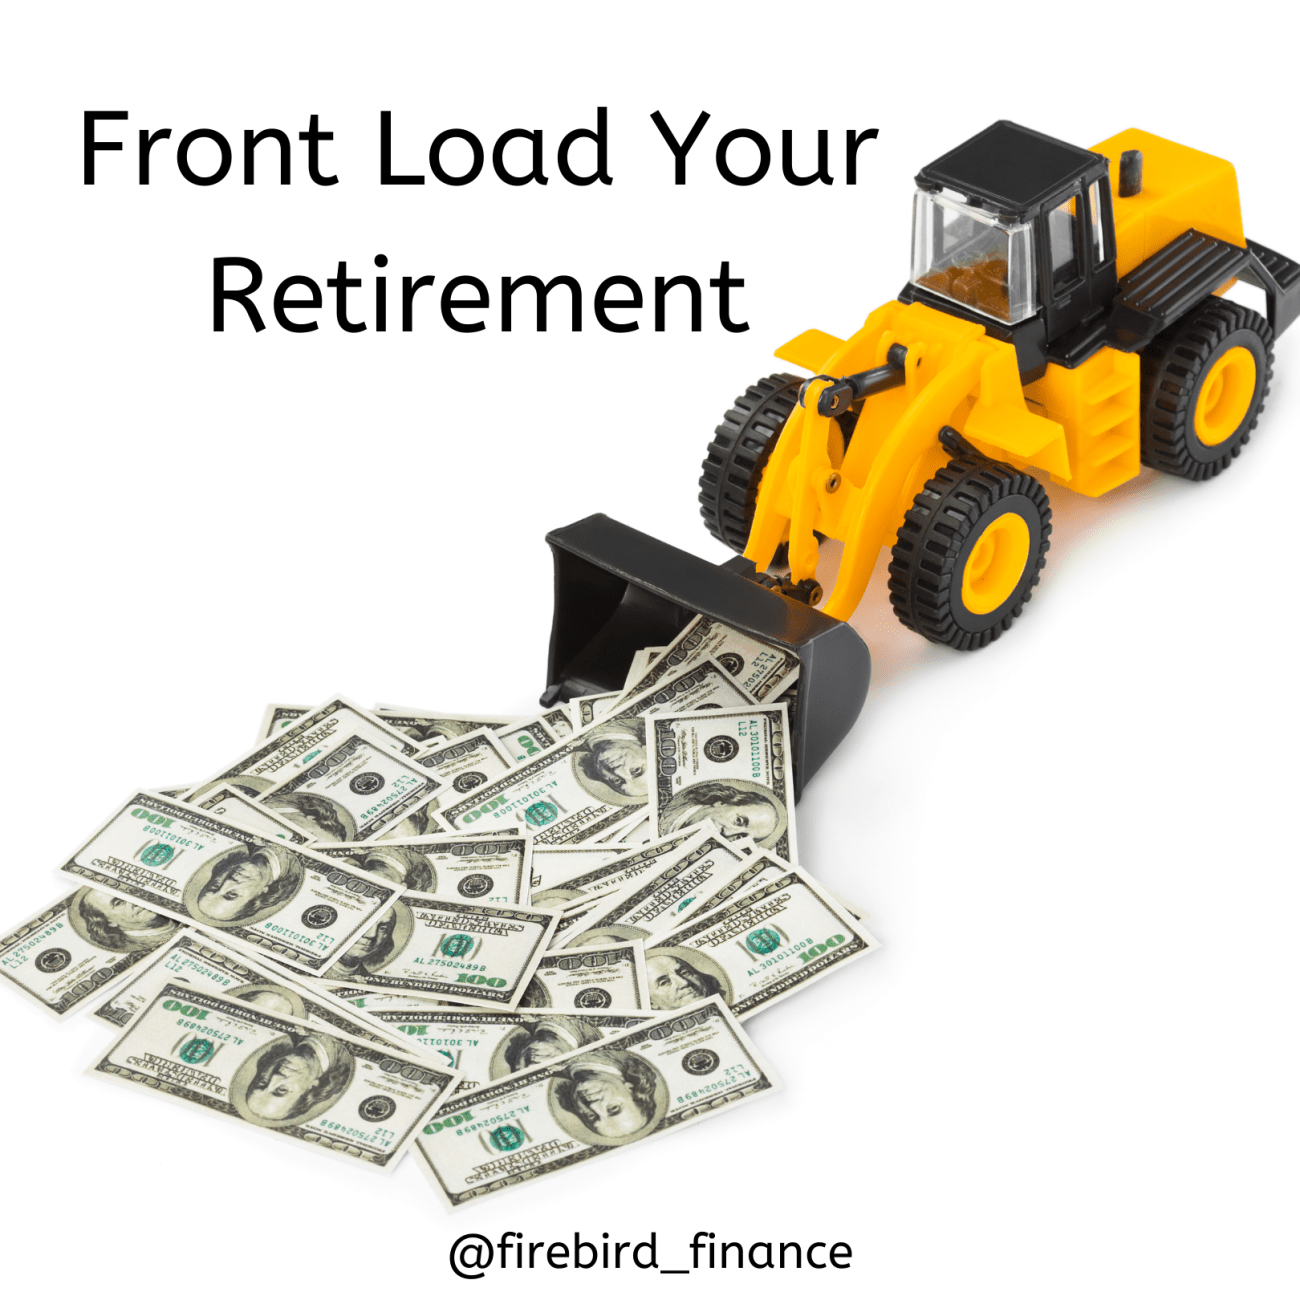 Front Load Your Retirement